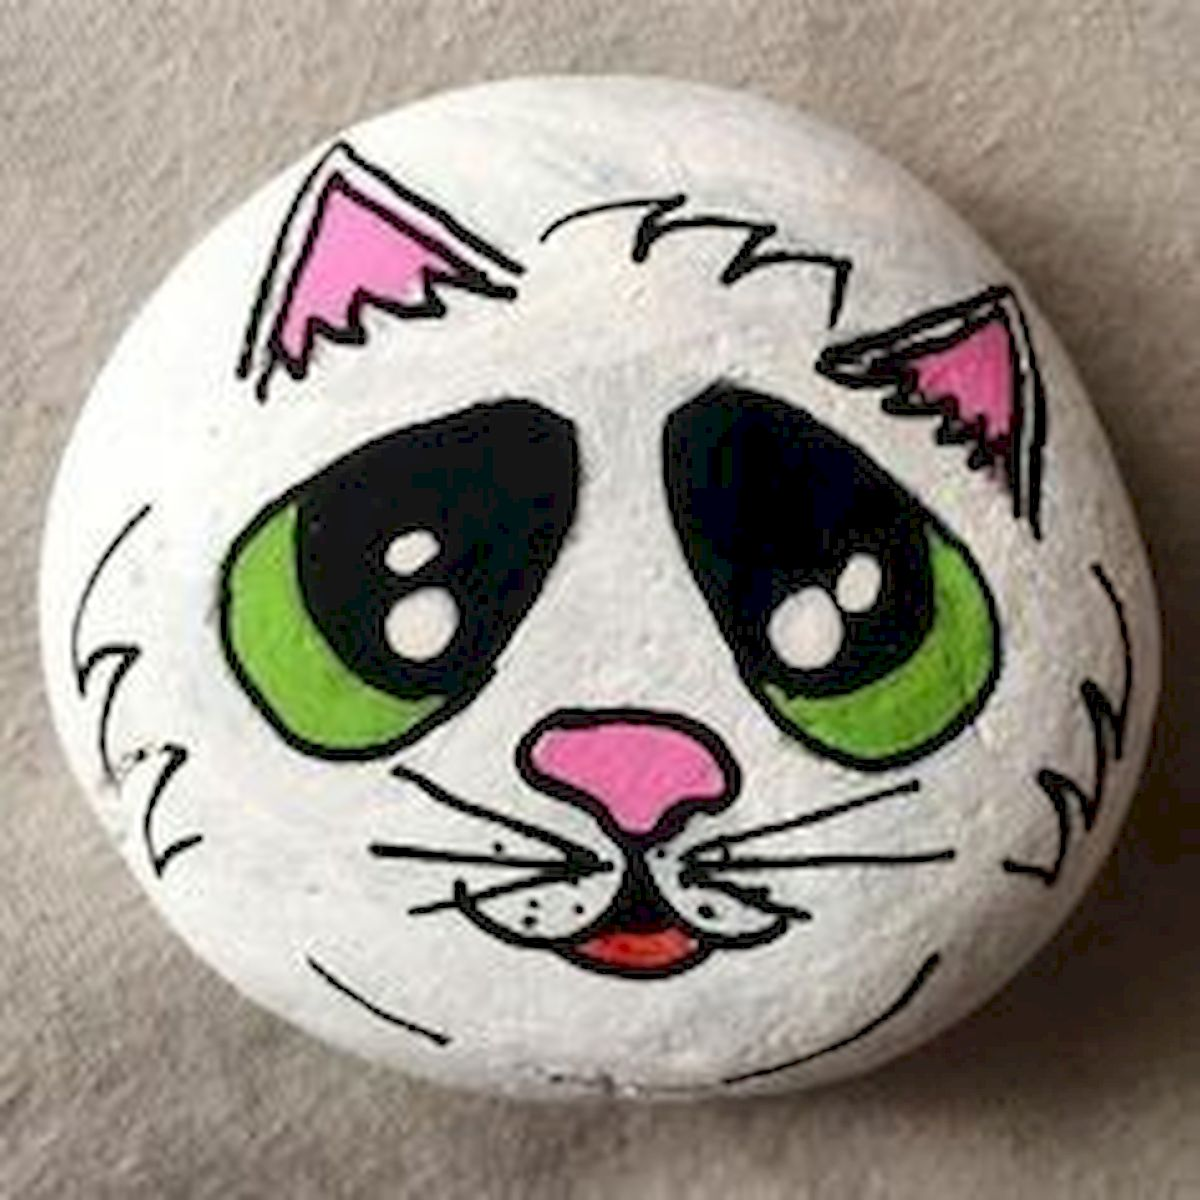 50 Best DIY Painted Rocks Animals Cats for Summer Ideas (32)